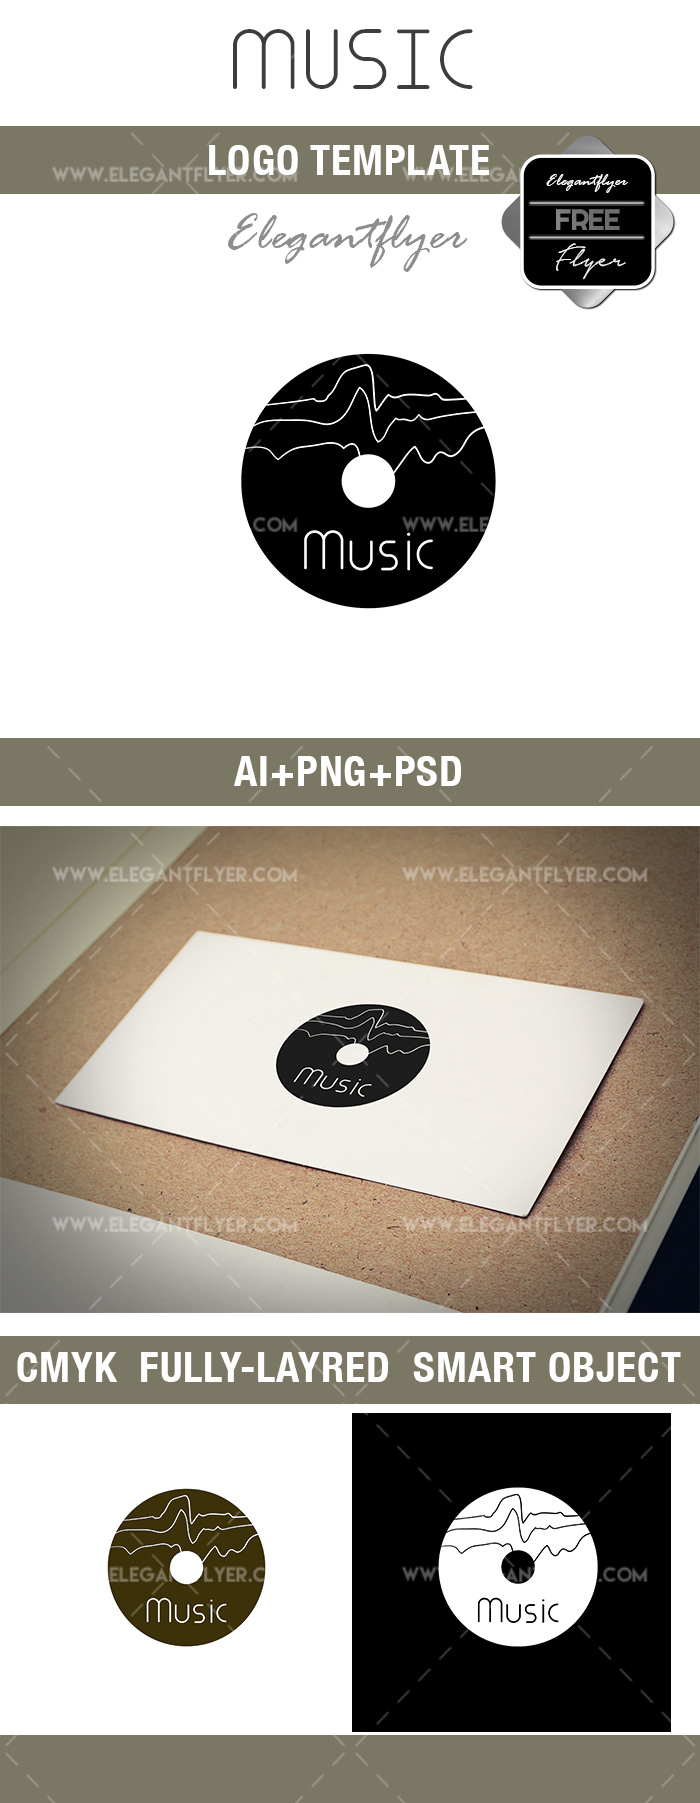 Music – Free Logo Templates